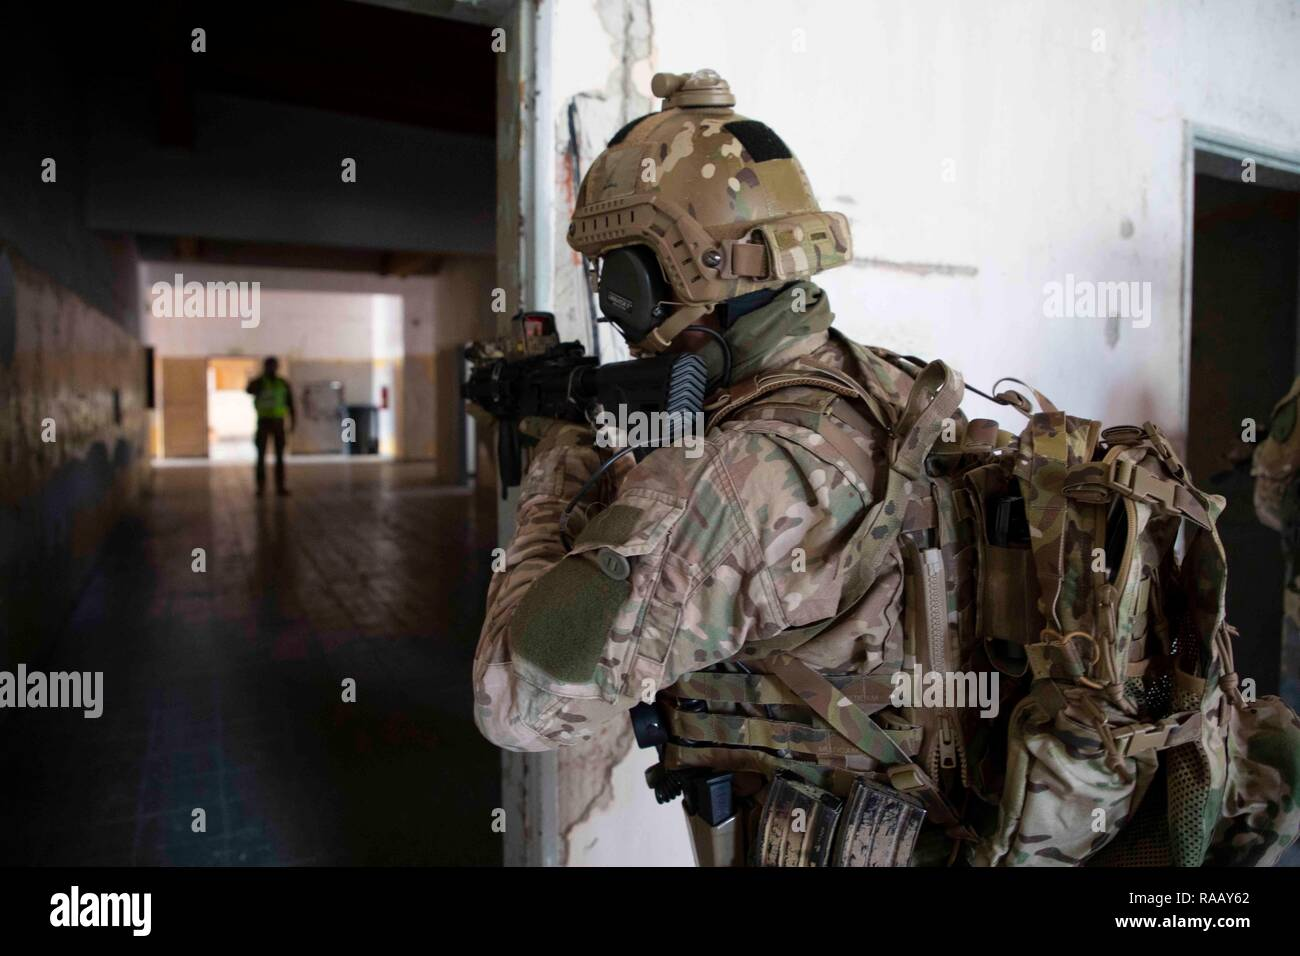 A Lithuanian Special Operations Forces member provides security Nov